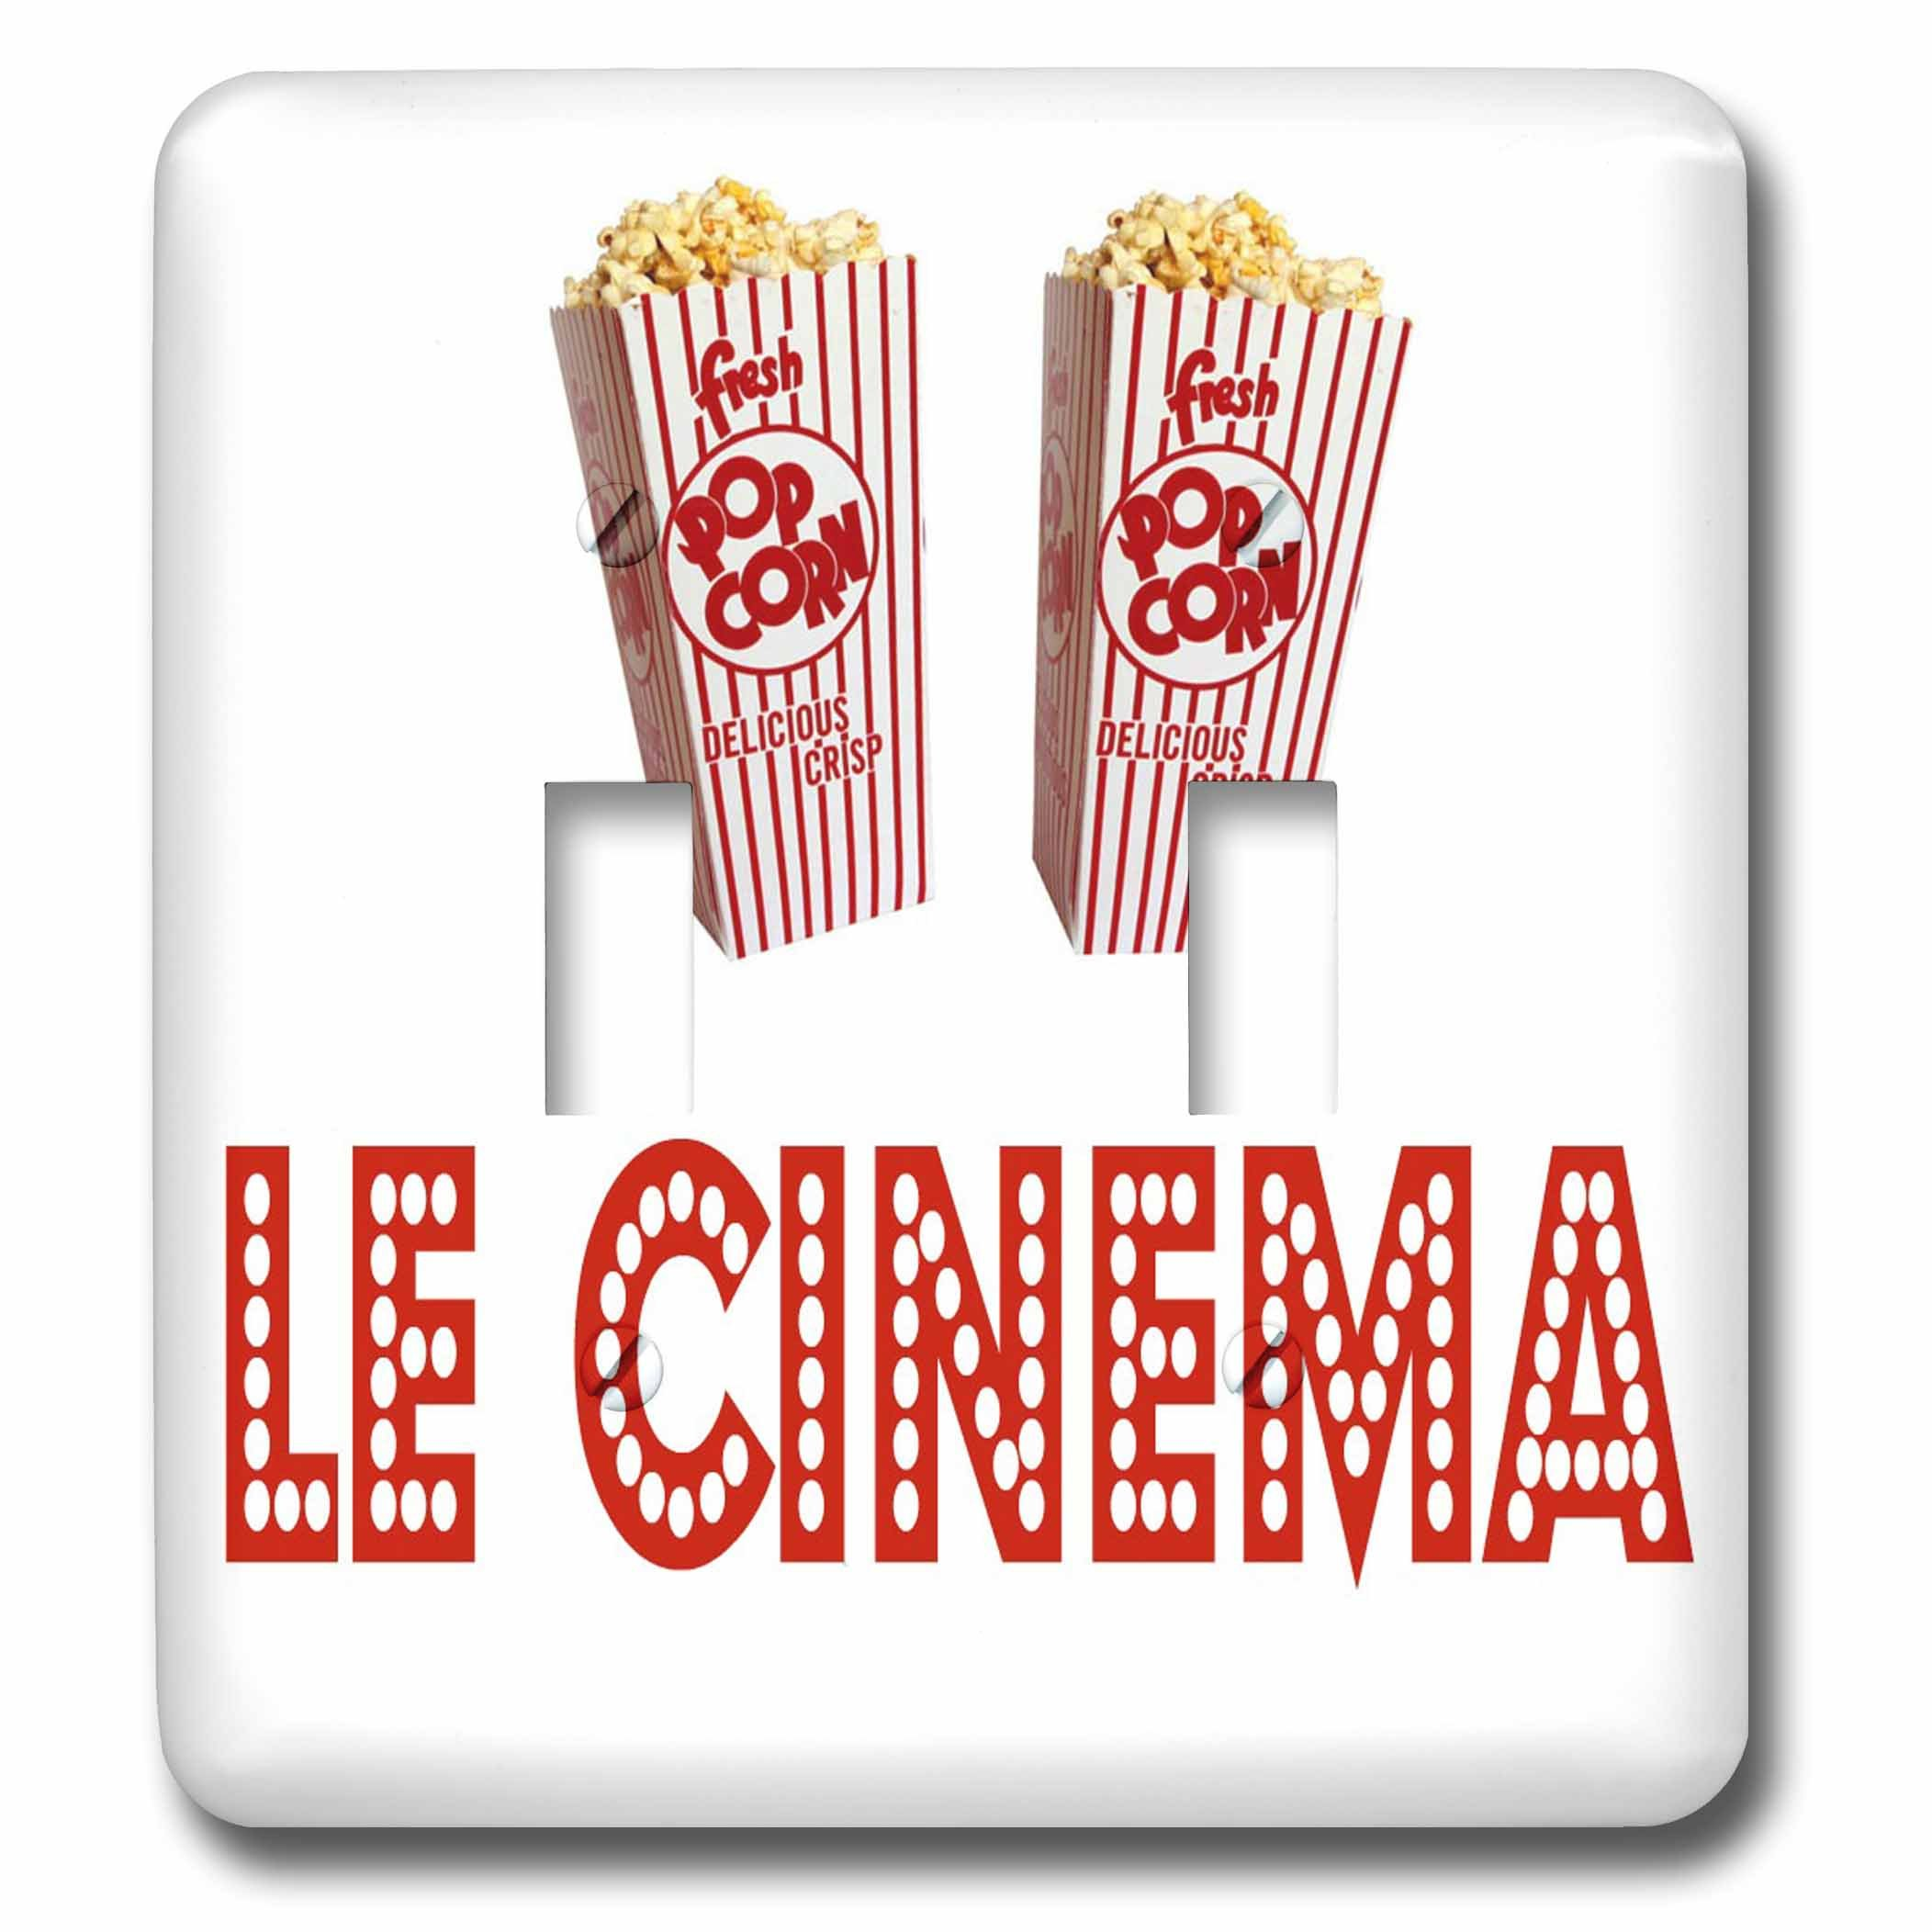 3dRose RinaPiro Movie Sayings - Le Cinema. Popcorn. - Light Switch Covers - double toggle switch (lsp_273568_2)